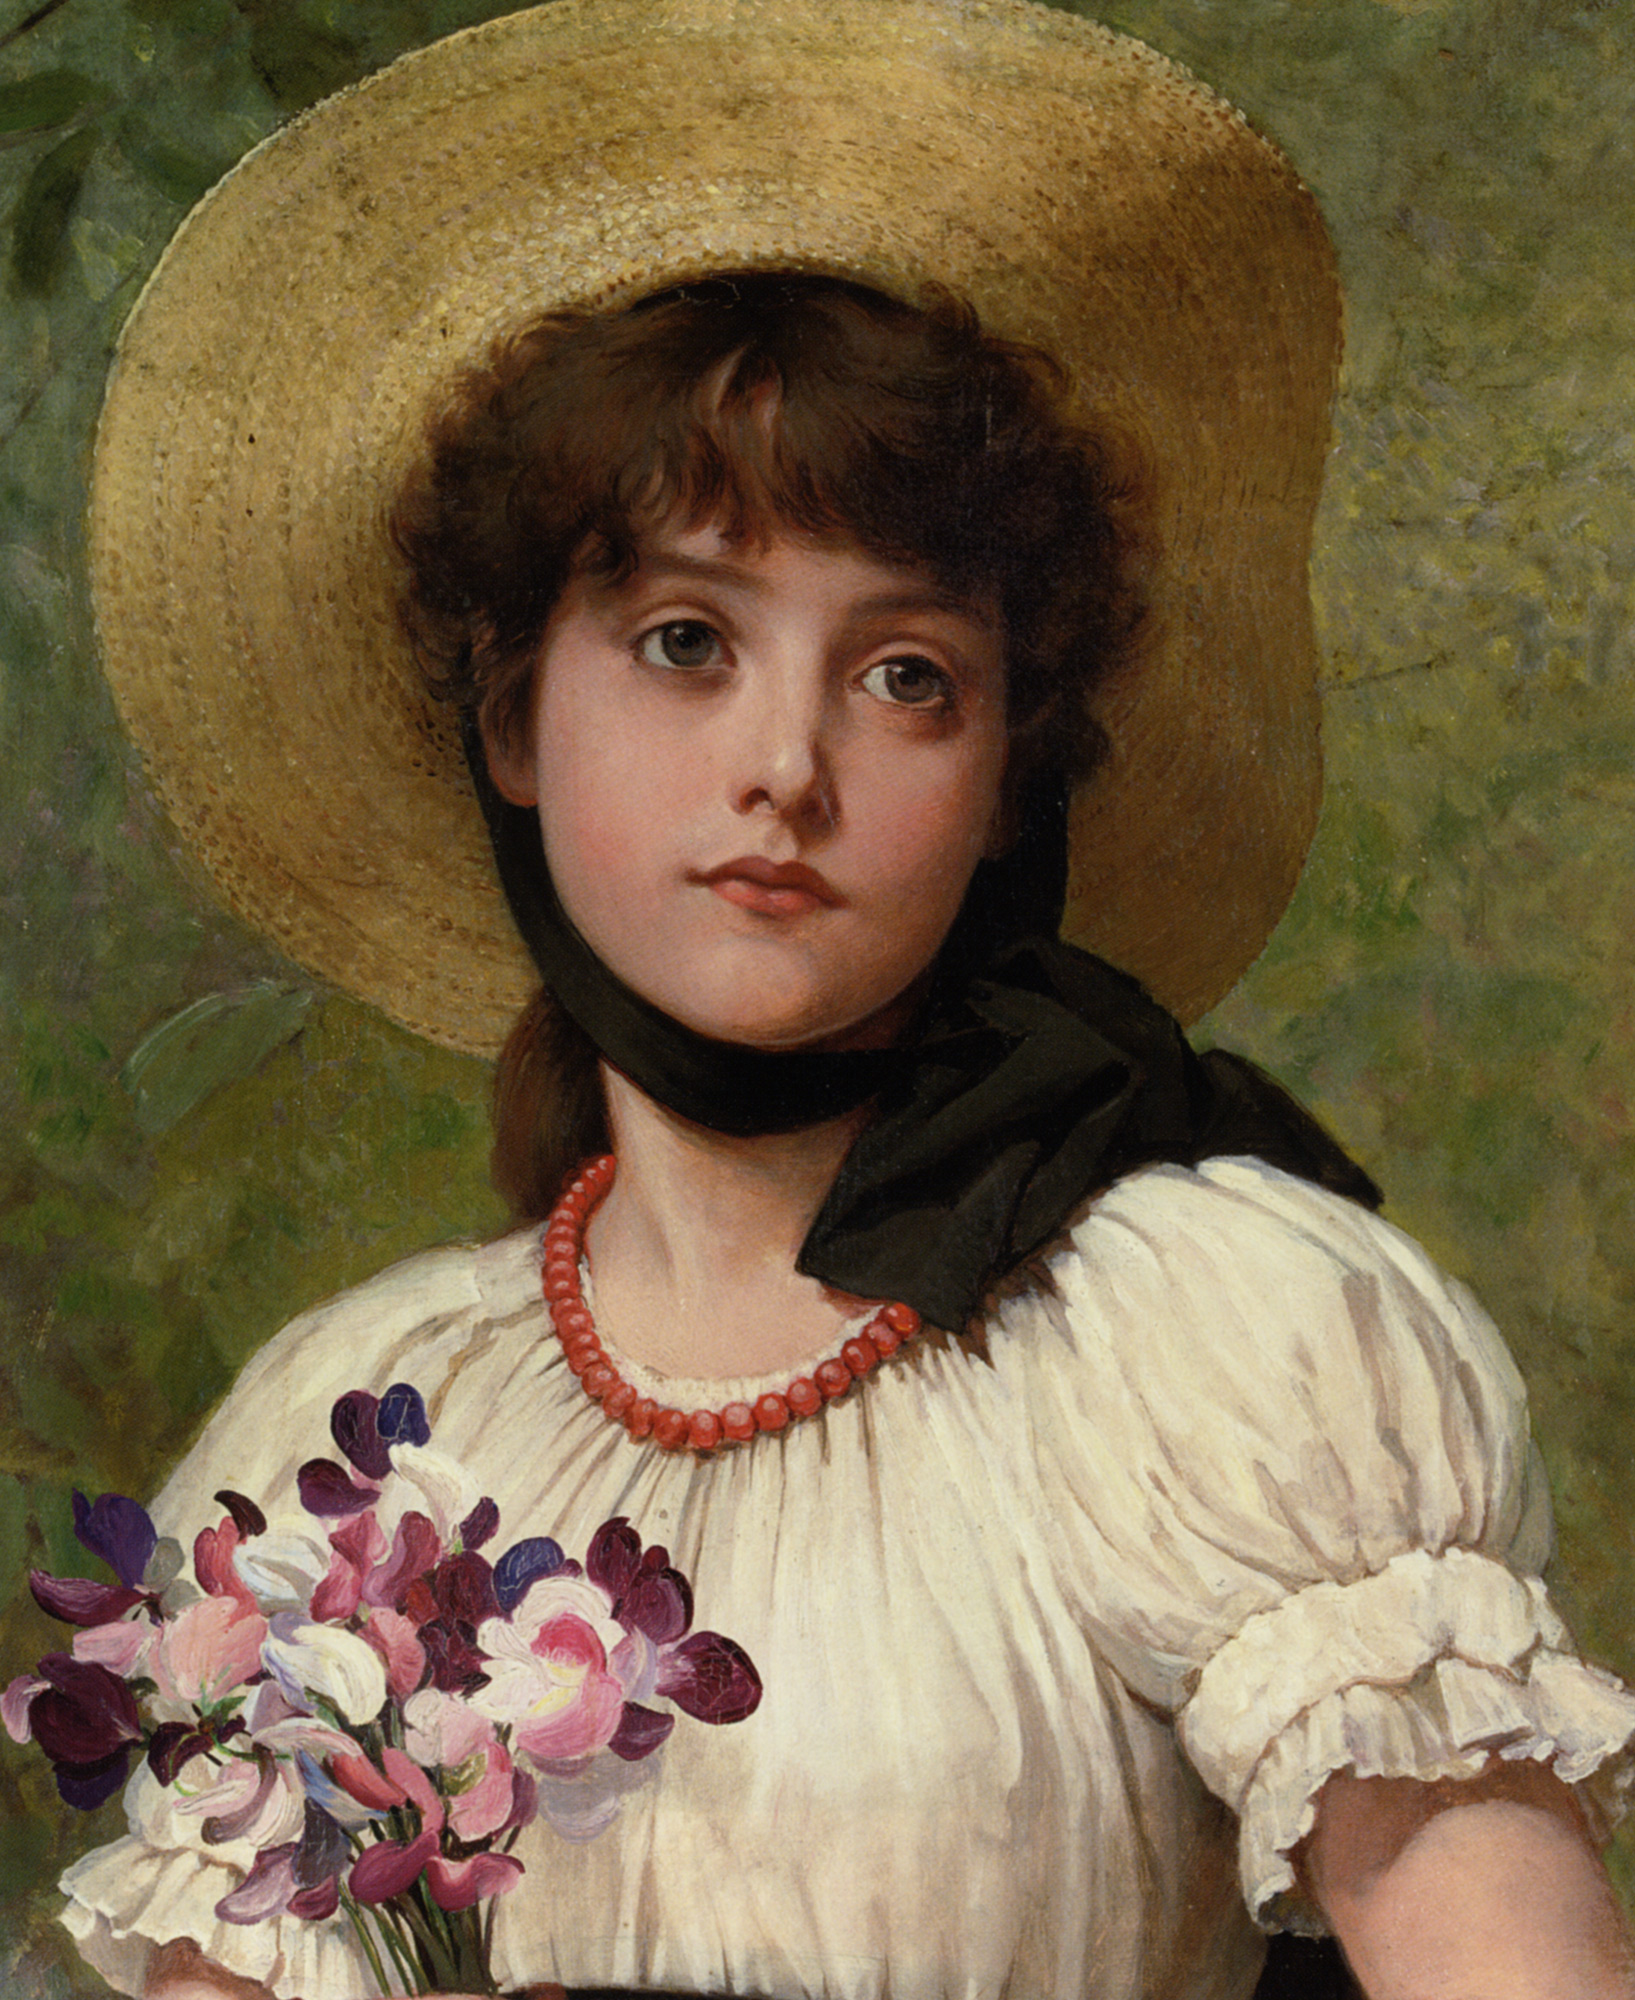 Sweetpeas :: George Dunlop, R.A., Leslie - Young beauties portraits in art and painting ôîòî